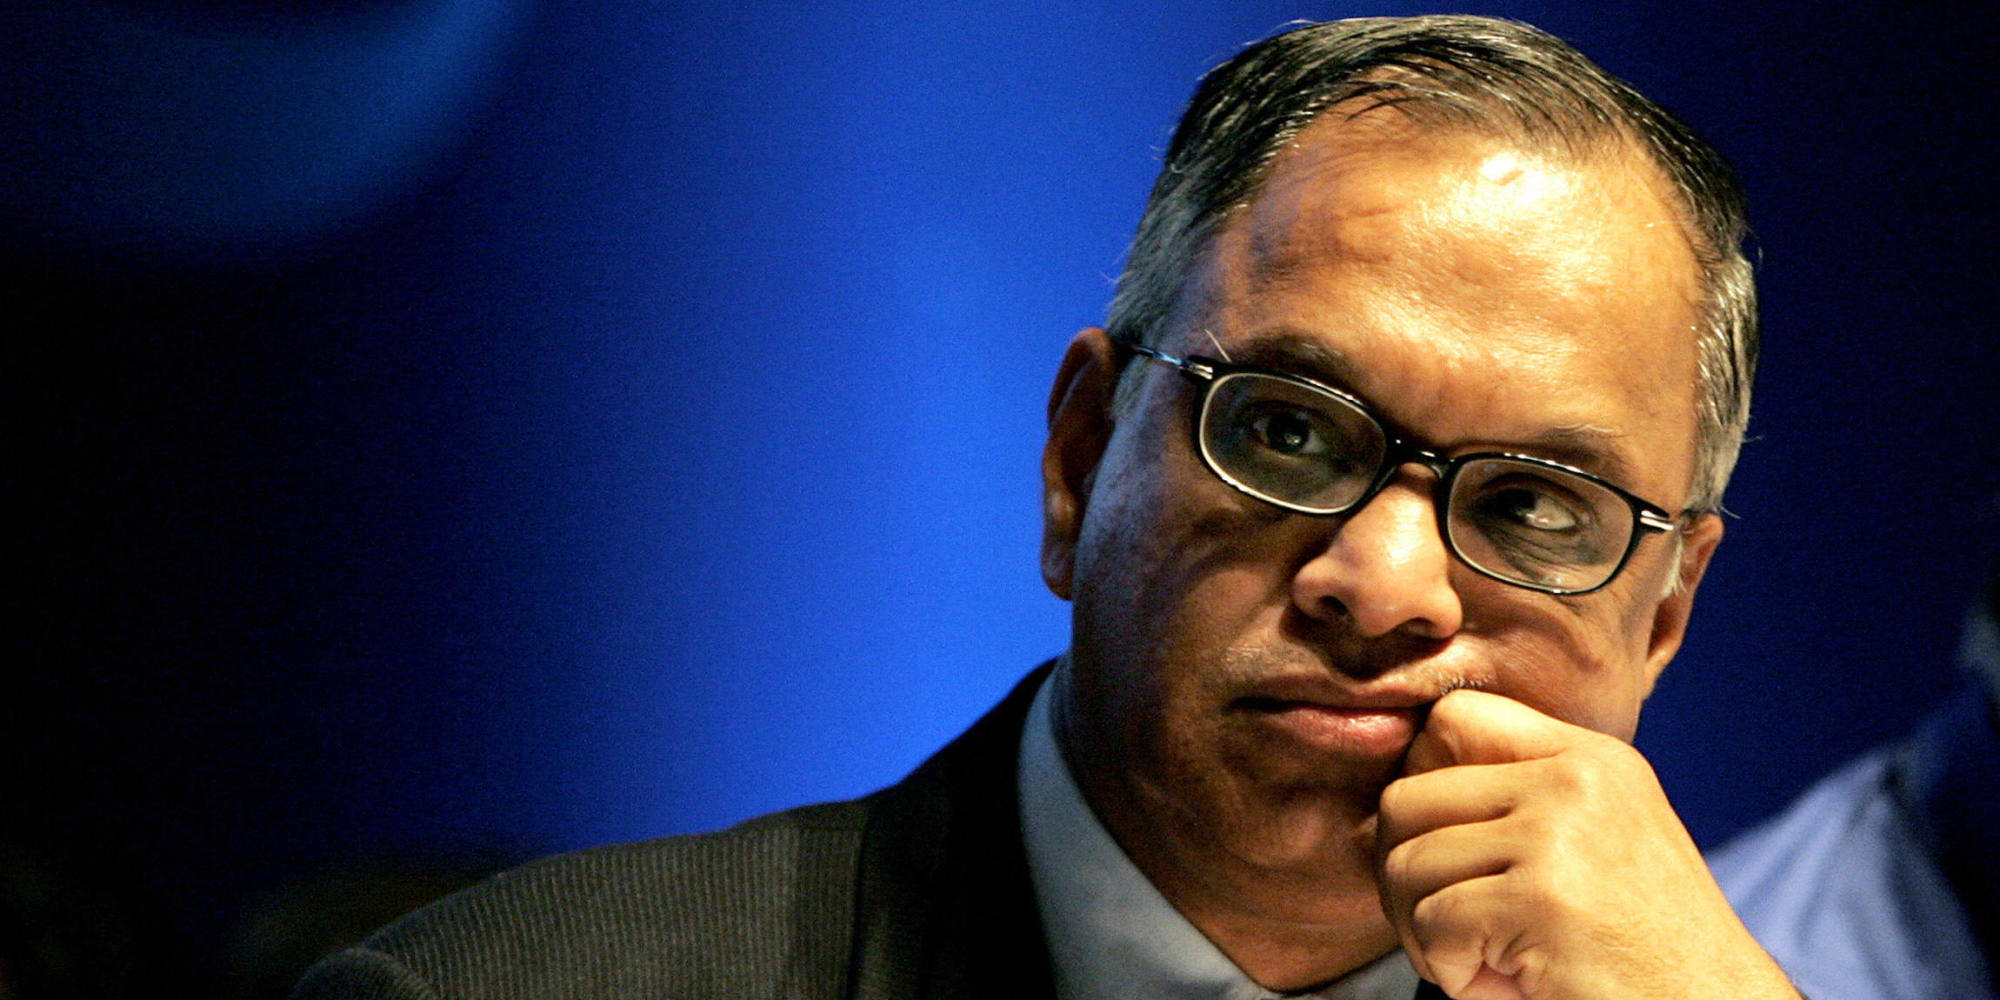 narayana murthy Yet another quote is being shared on social media and this time it is attributed to  infosys co-founder narayana murthy the quote that is.